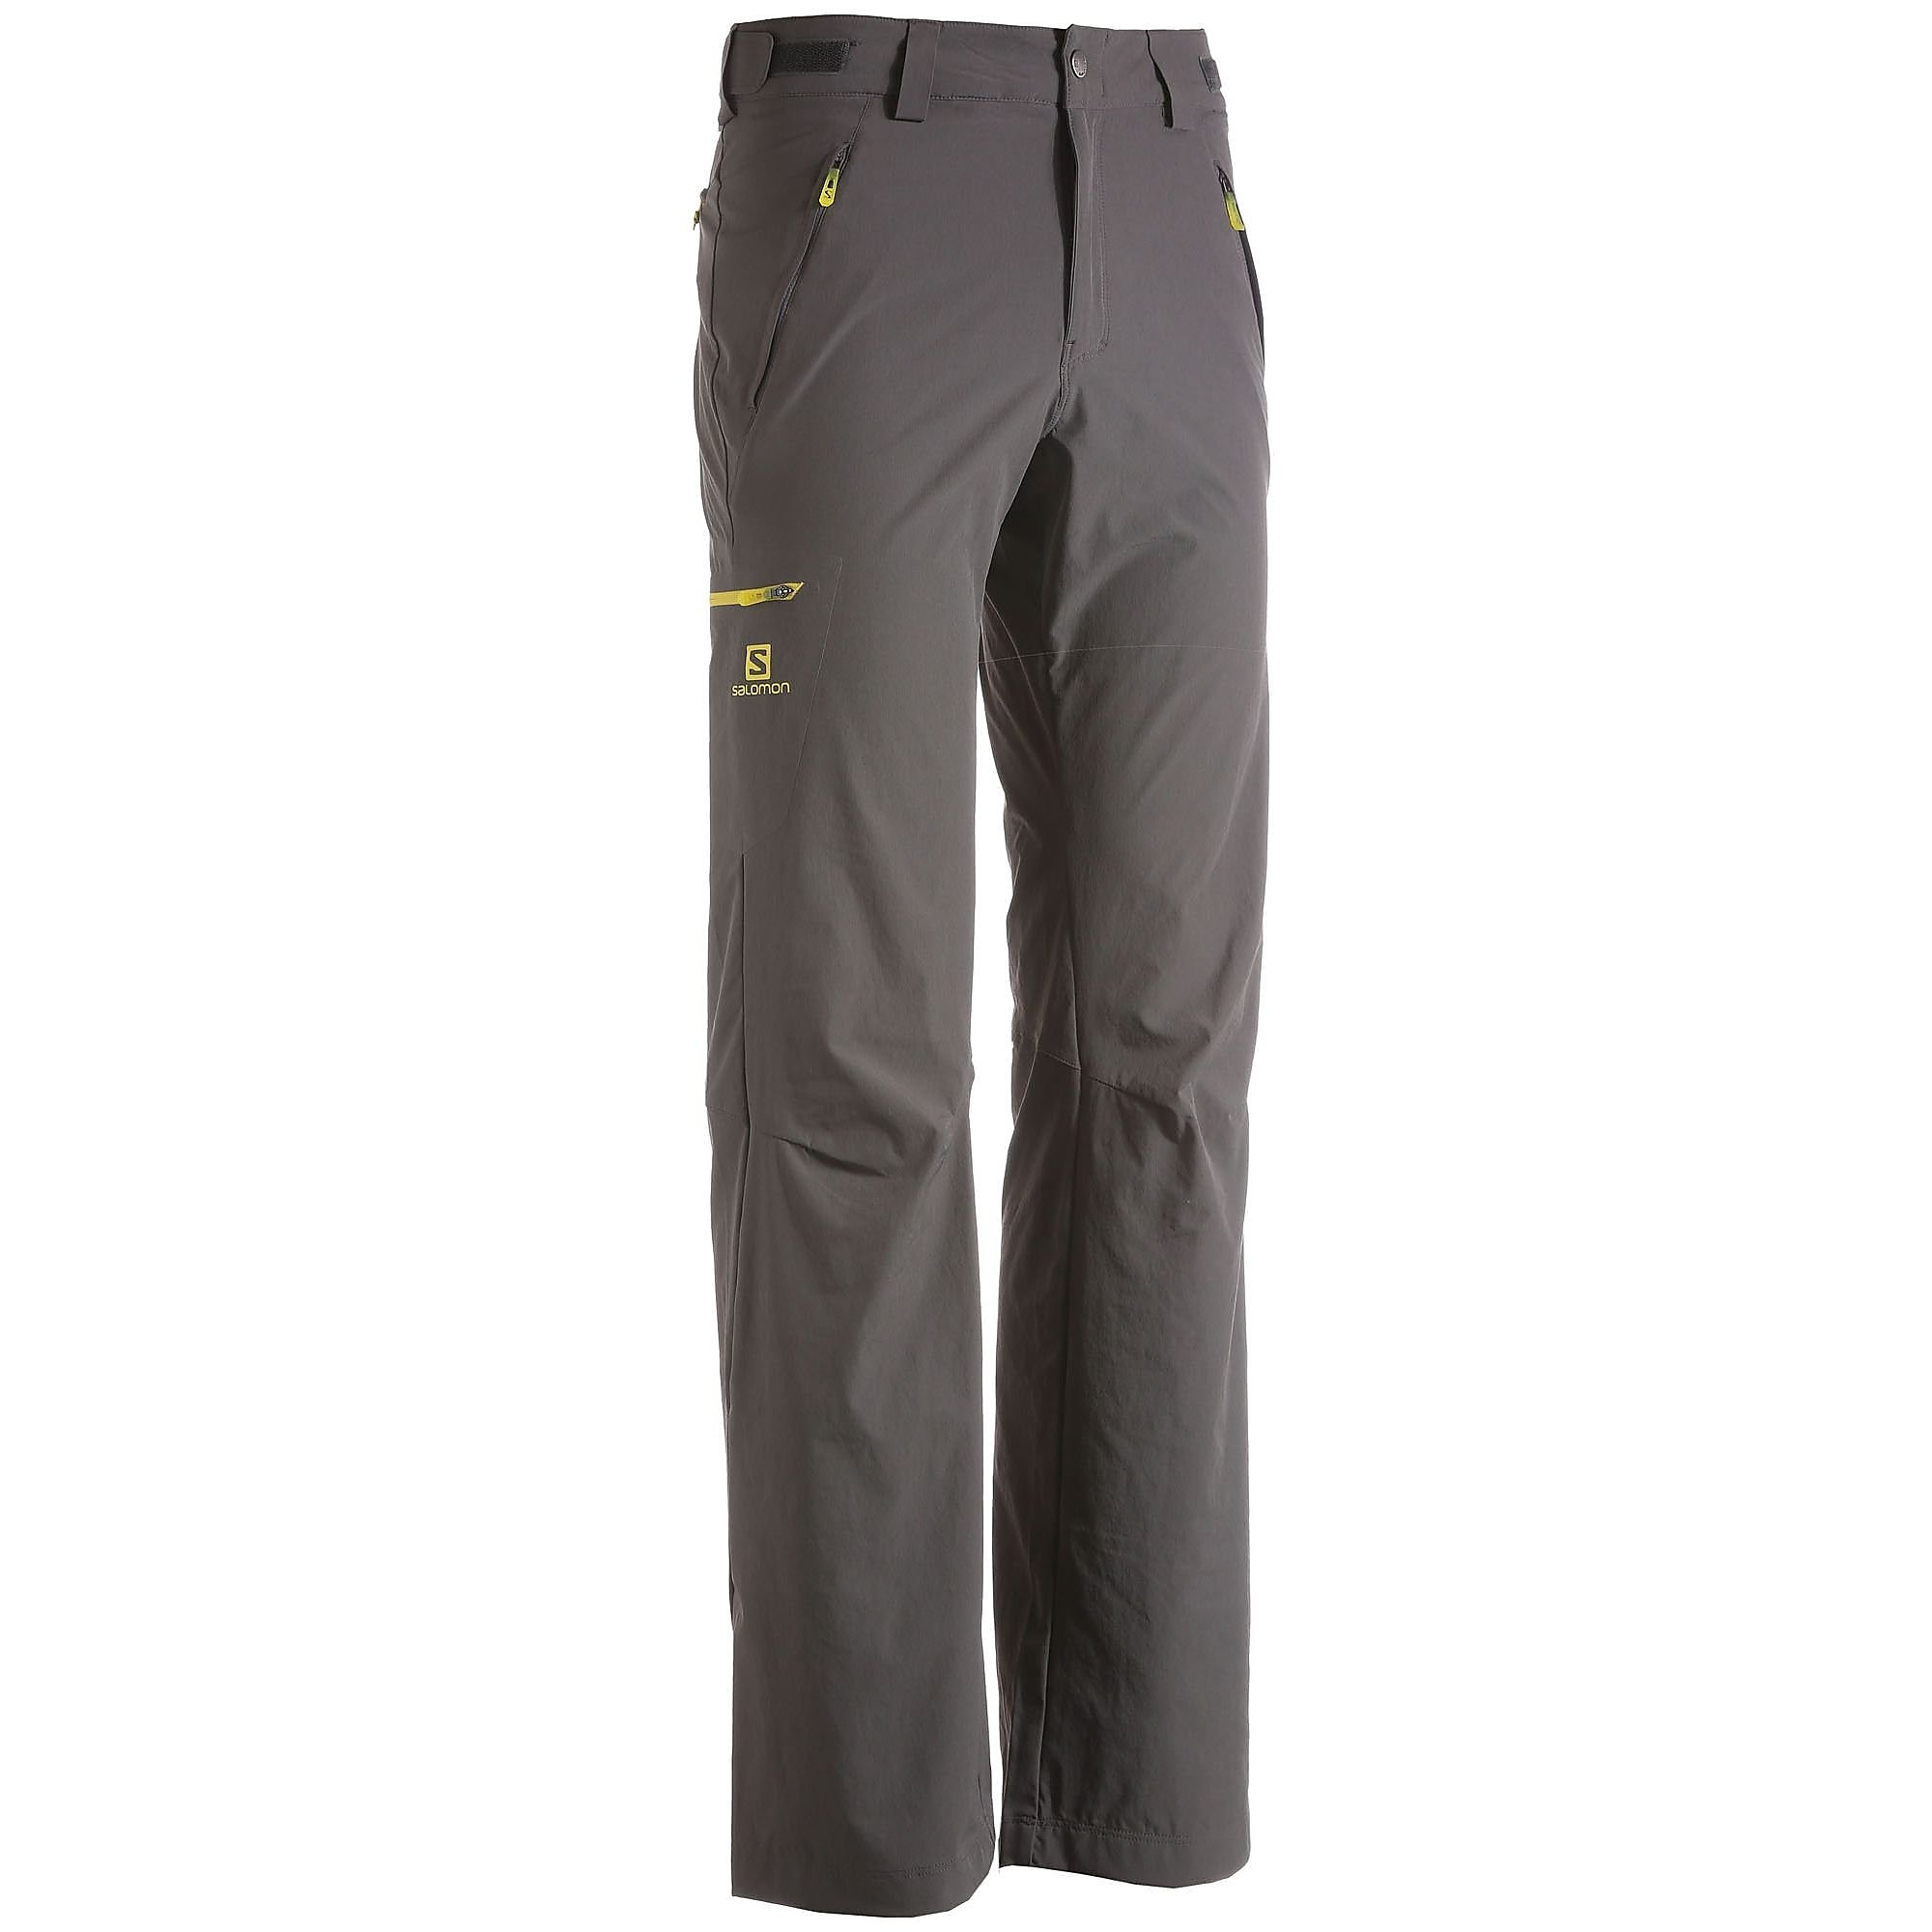 Salomon WAYFARER OUTDOORBROEK